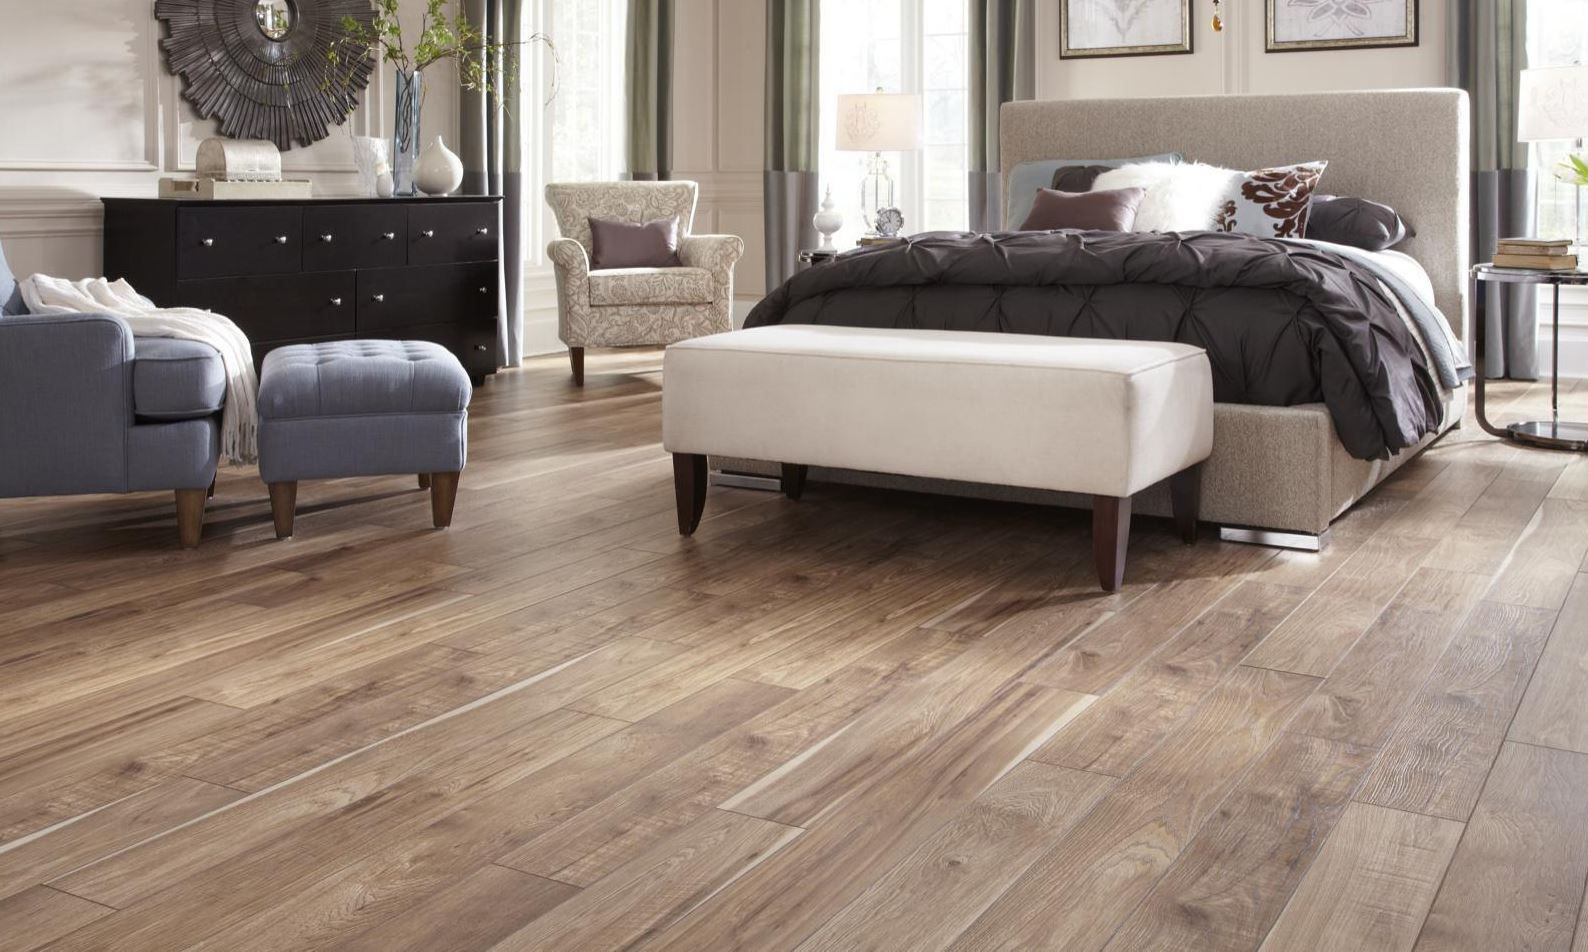 grey hardwood floors with dark furniture of luxury vinyl plank flooring that looks like wood regarding mannington adura luxury vinyl plank flooring 57aa7d065f9b58974a2be49e jpg